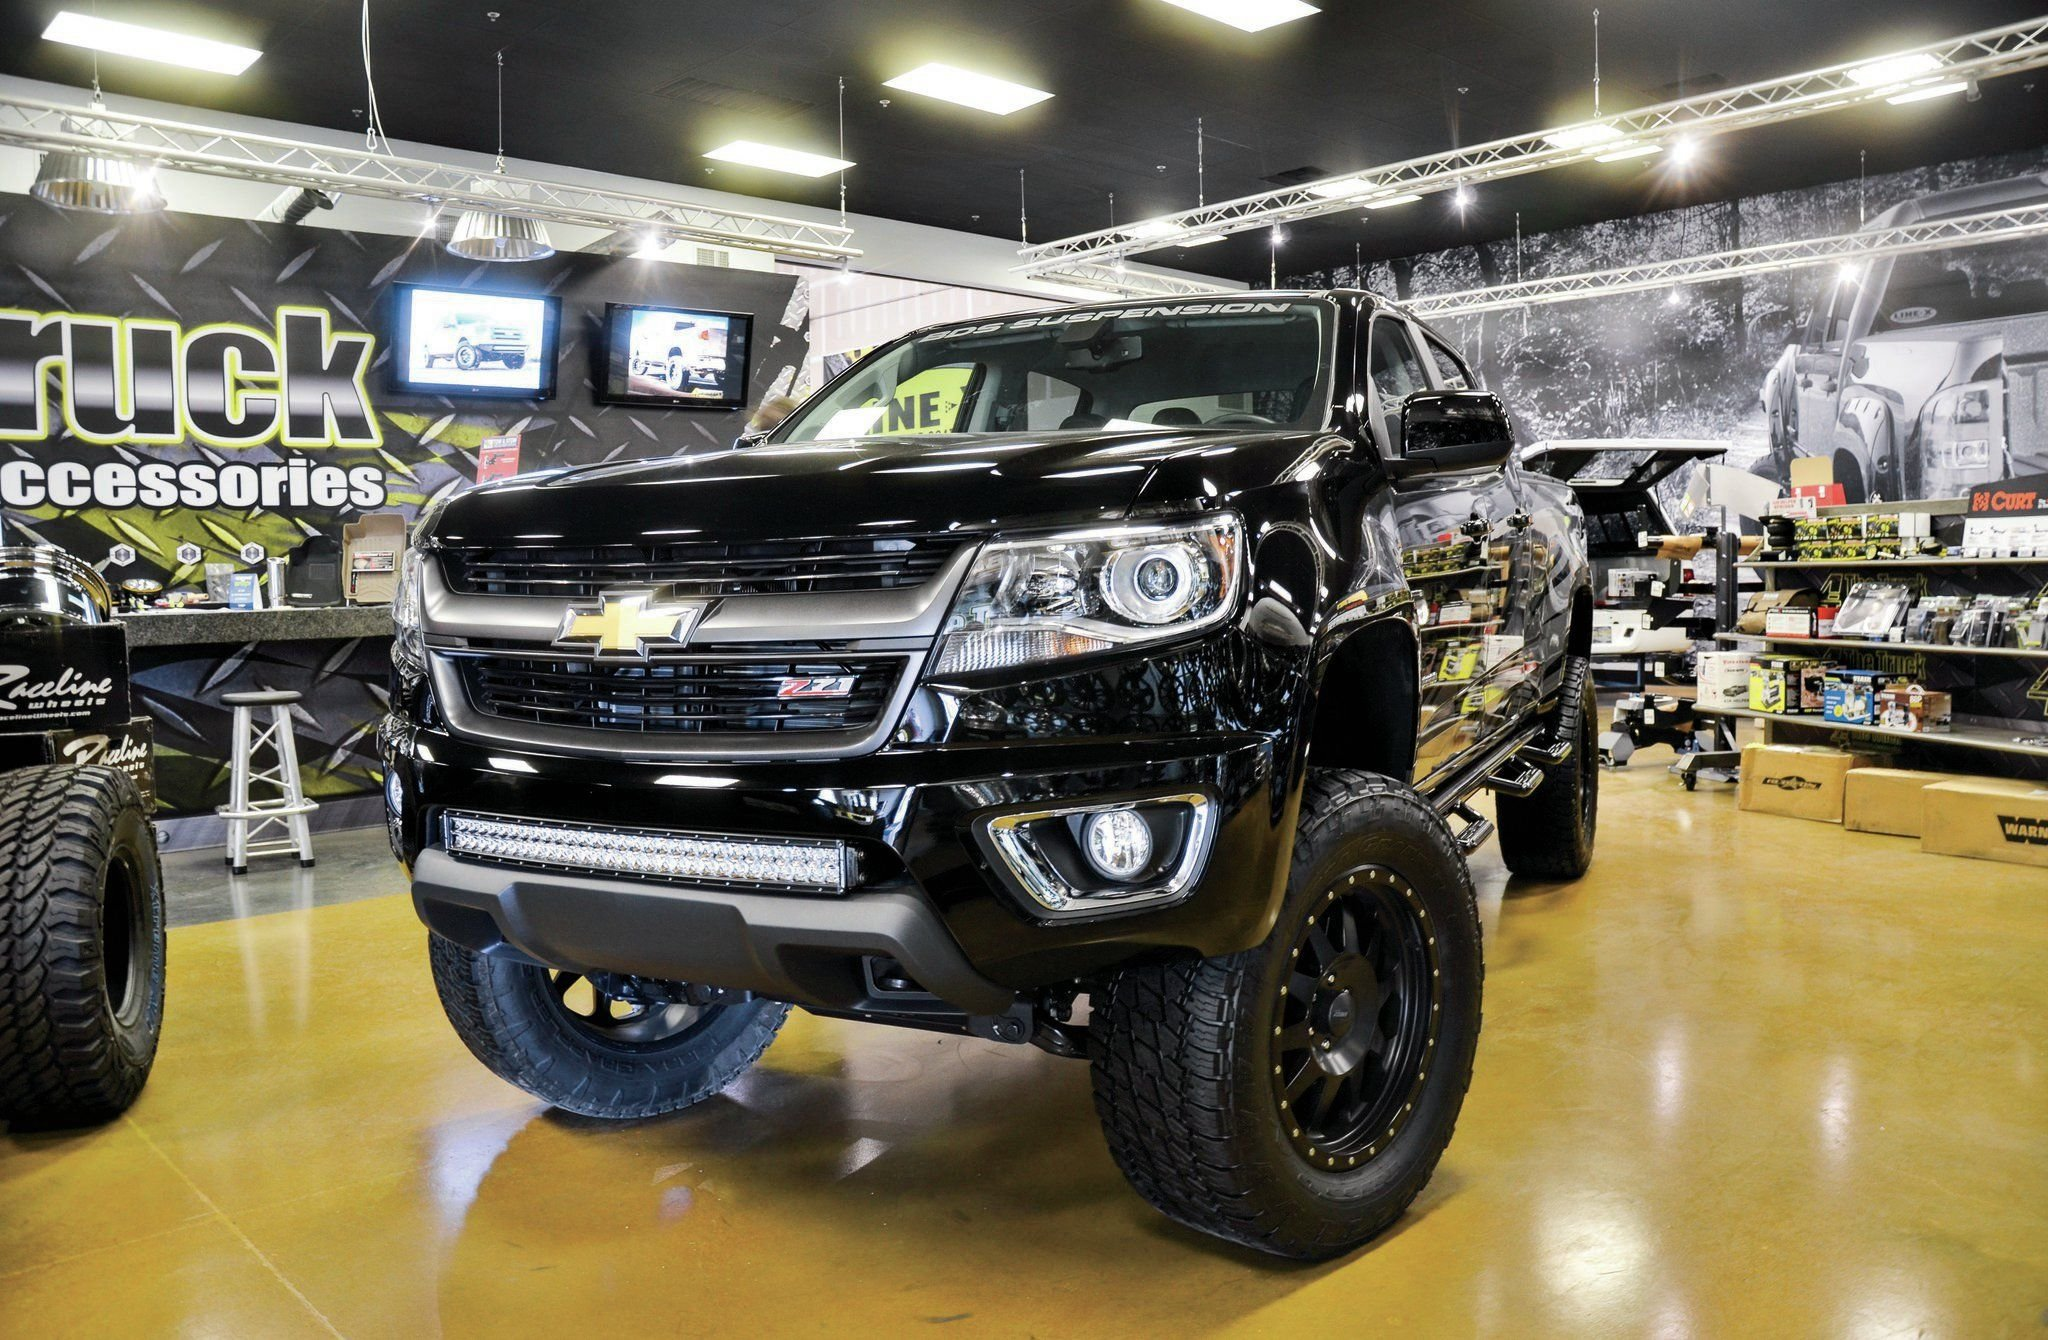 2015 Bds Suspension Chevrolet Colorado Offroad 4x4 Custom Truck Pickup Wallpaper 2048x1340 990438 Wallpaperup